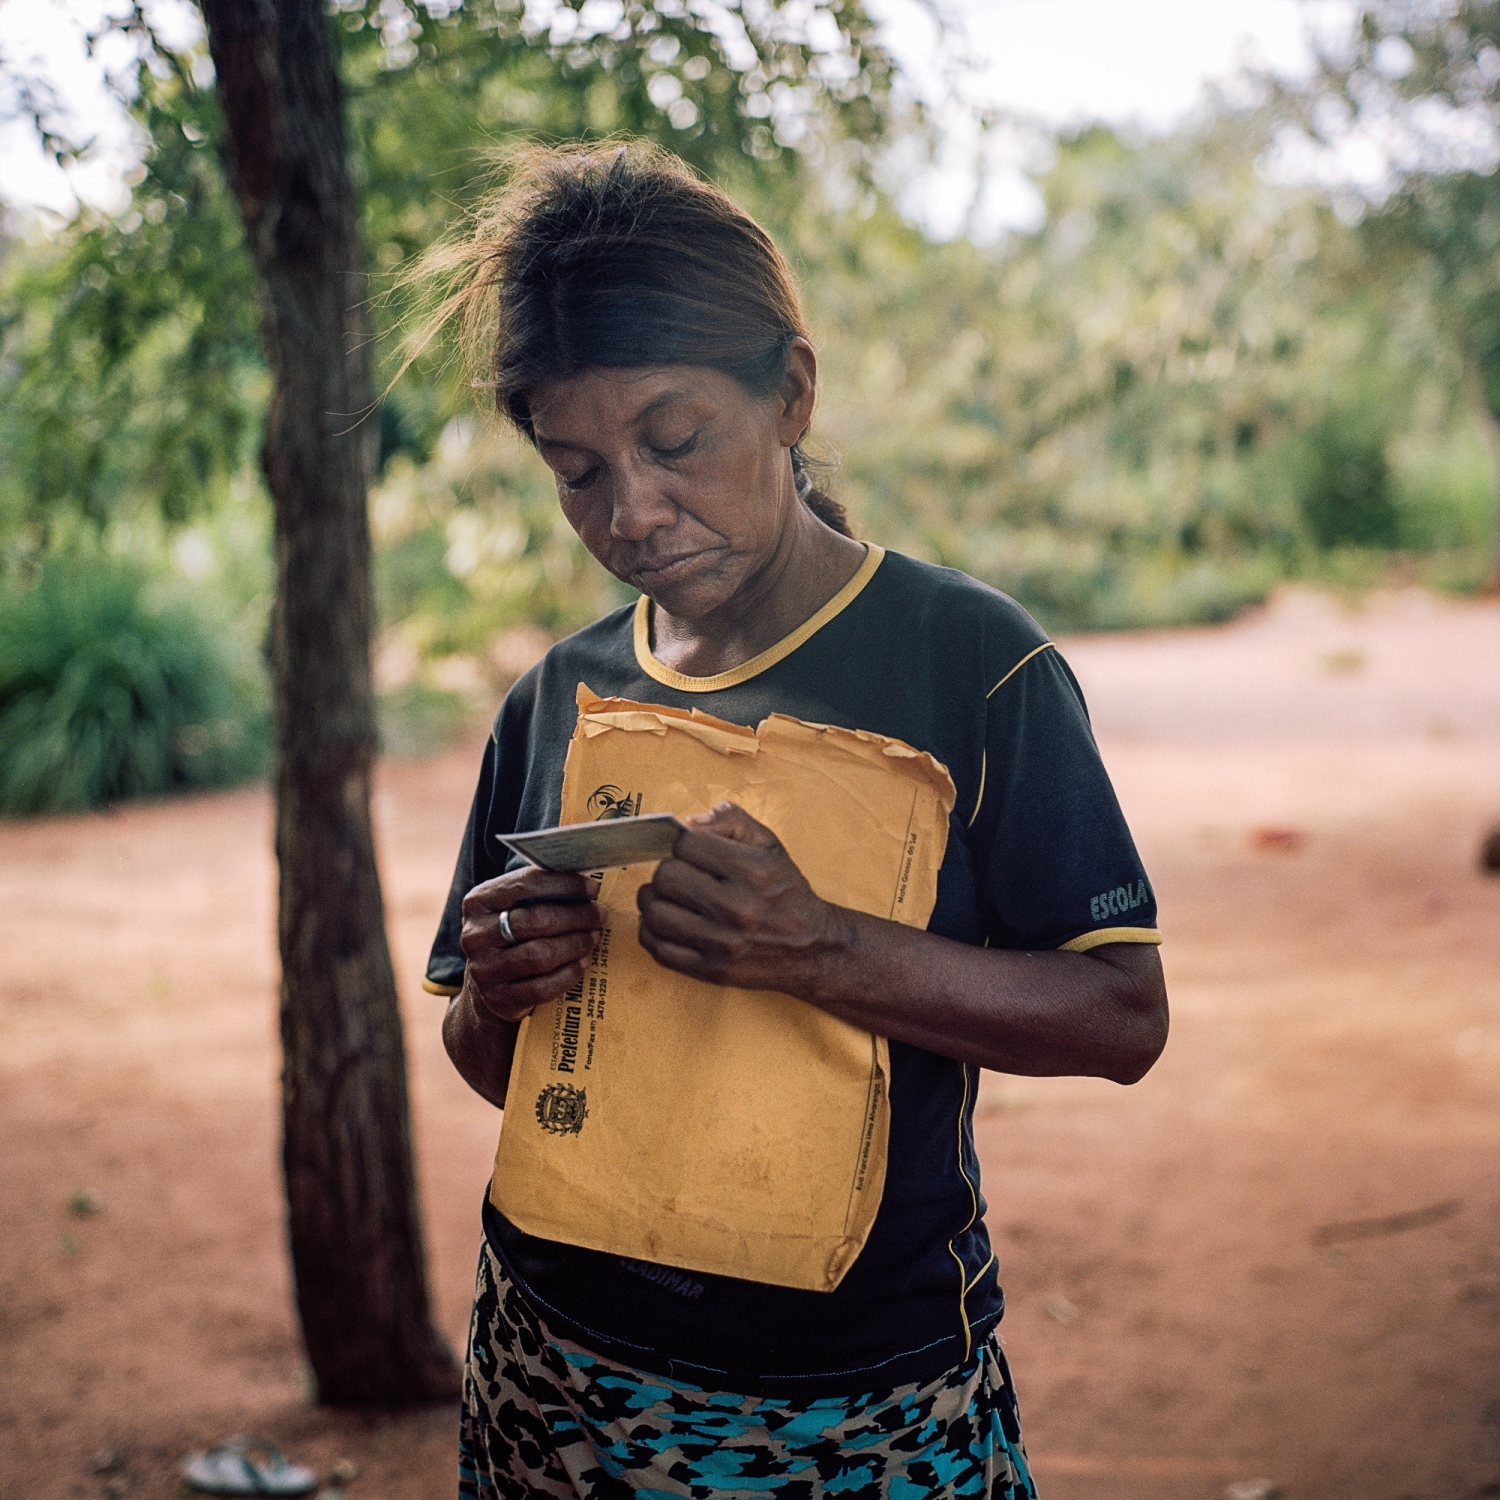 November 30. Maria Silveira, looks at a photo of one of the two sons she lost to suicide, Gilmar, 16, and Junior, 21, to suicide in the community of Sassoro where 10 people killed themselves last year.